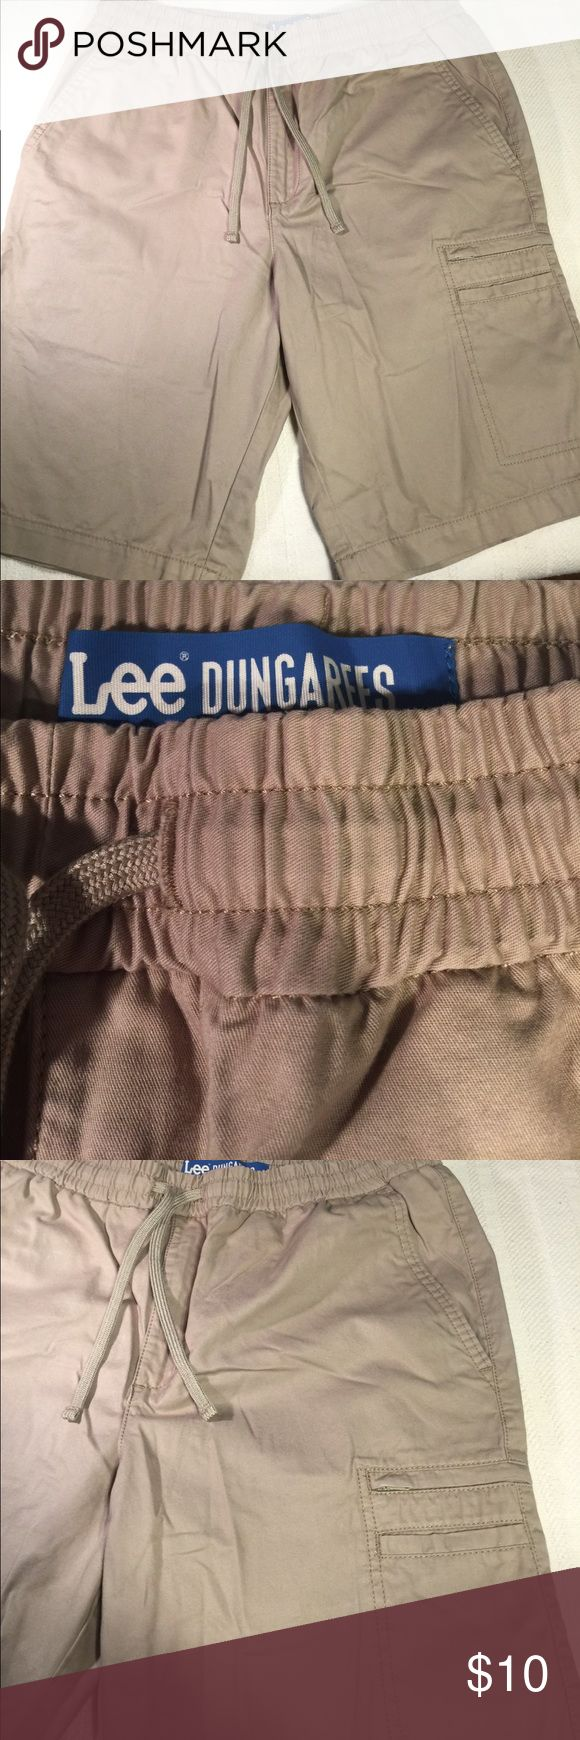 Beige shorts In very good condition! No stains or rips! Lee Dungarees Shorts Cargo